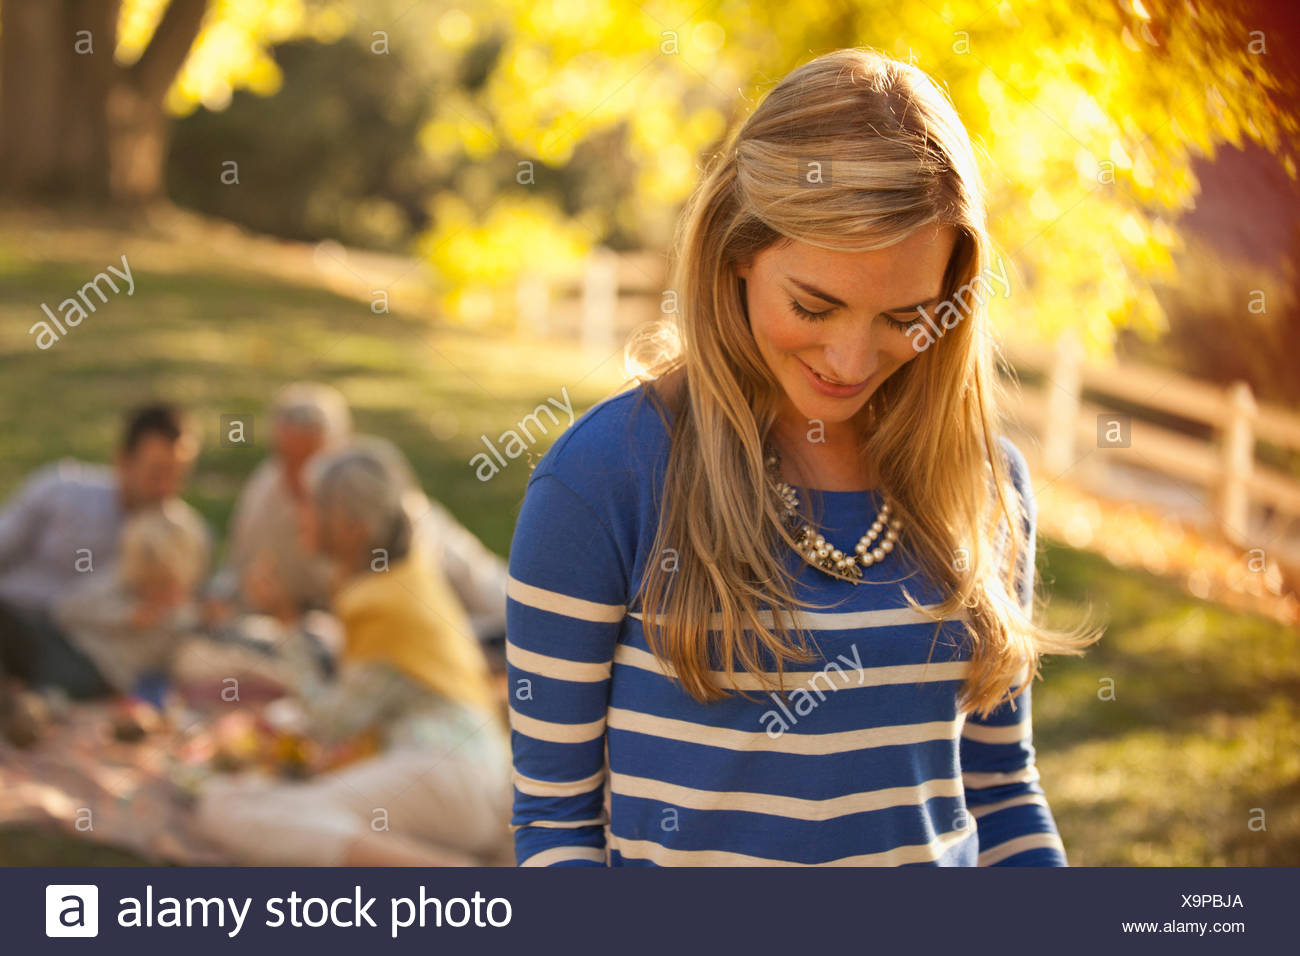 Smiling woman standing outdoors - Stock Image